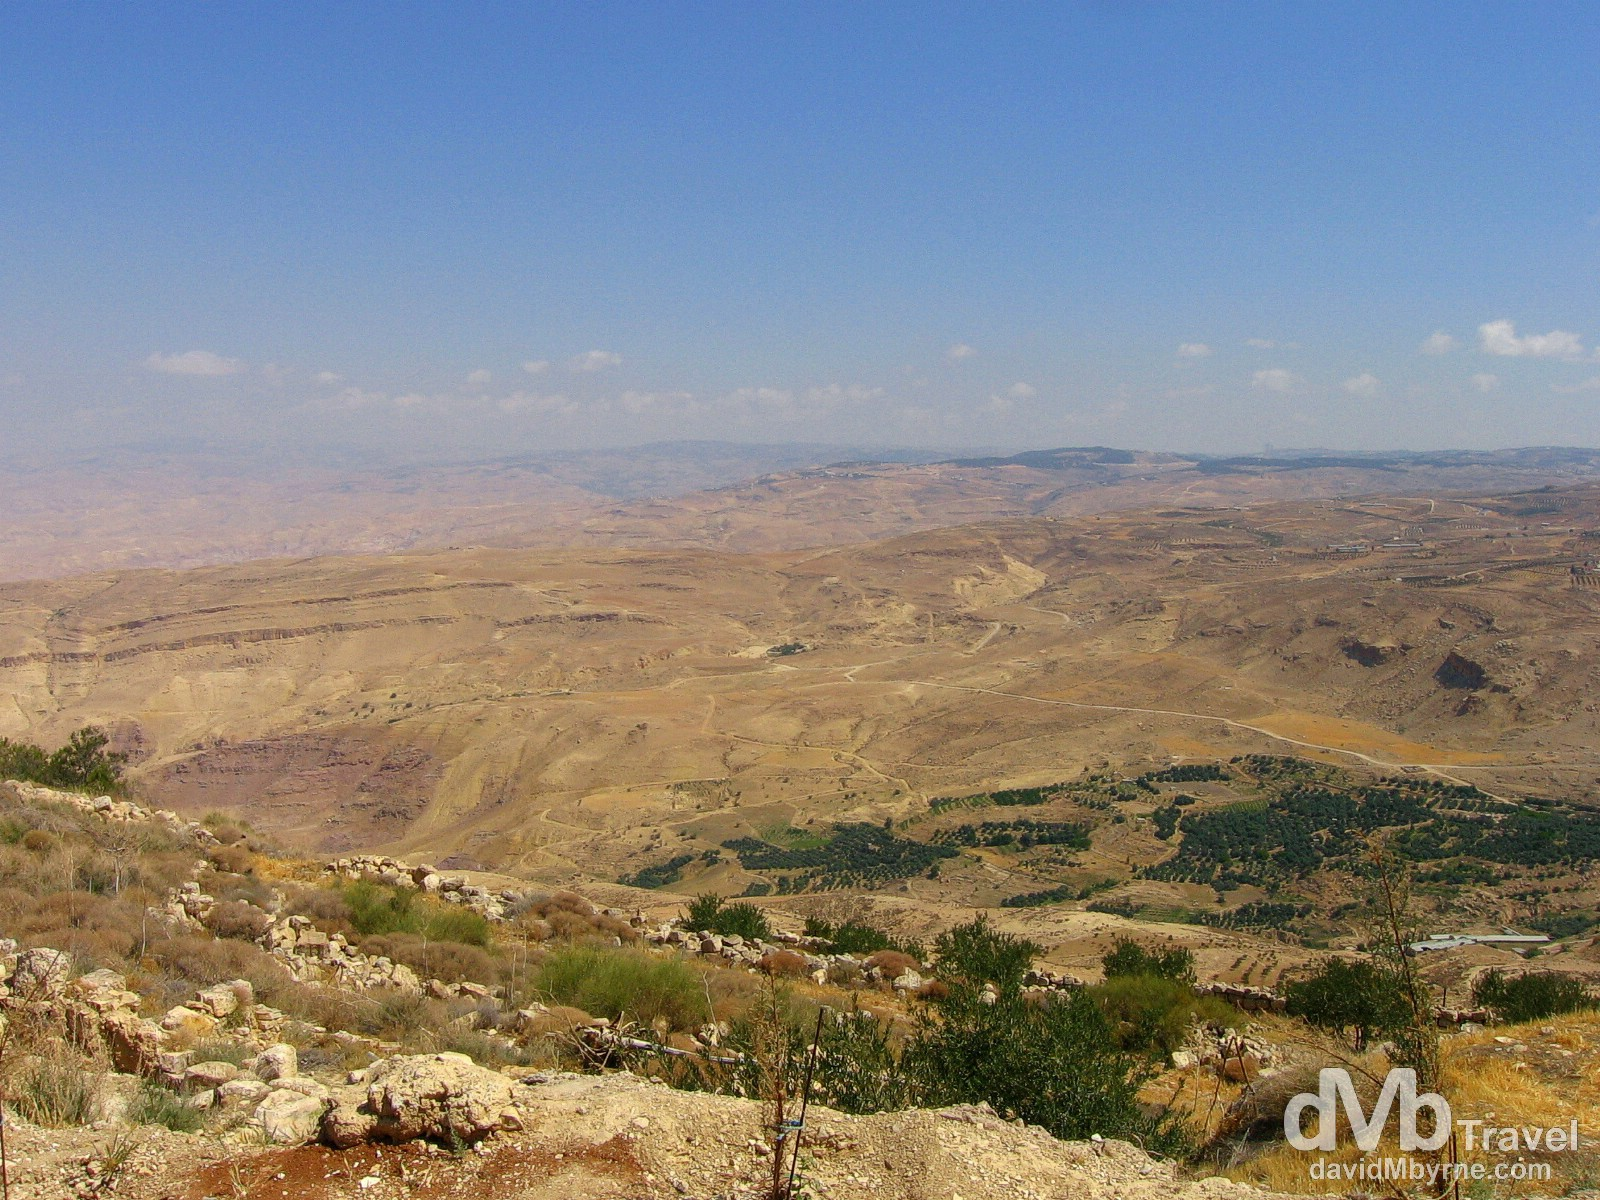 The view of the Promised Land from Mount Nebo near the Israeli/Jordanian border. April 29, 2008.